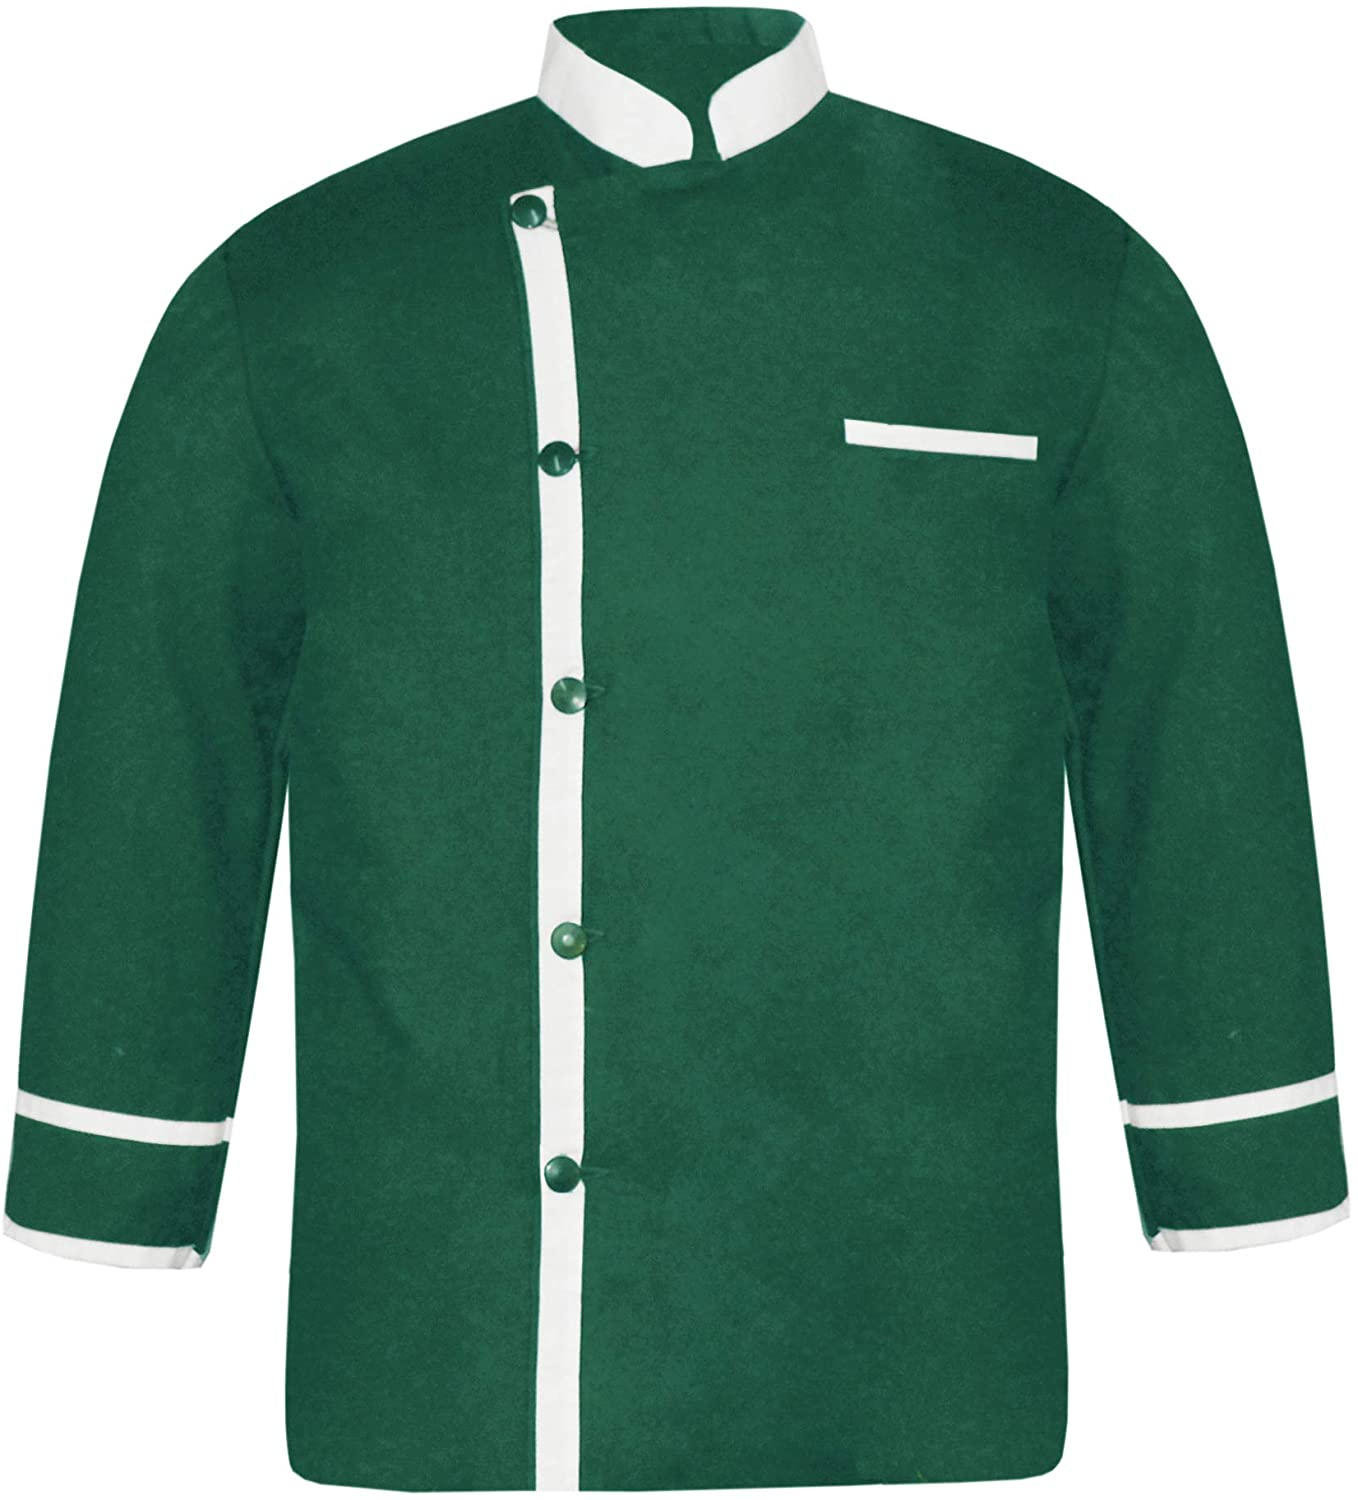 White Vend Cosmos Men's Frequent Colours in LS-44 Chef Jacket/Coat